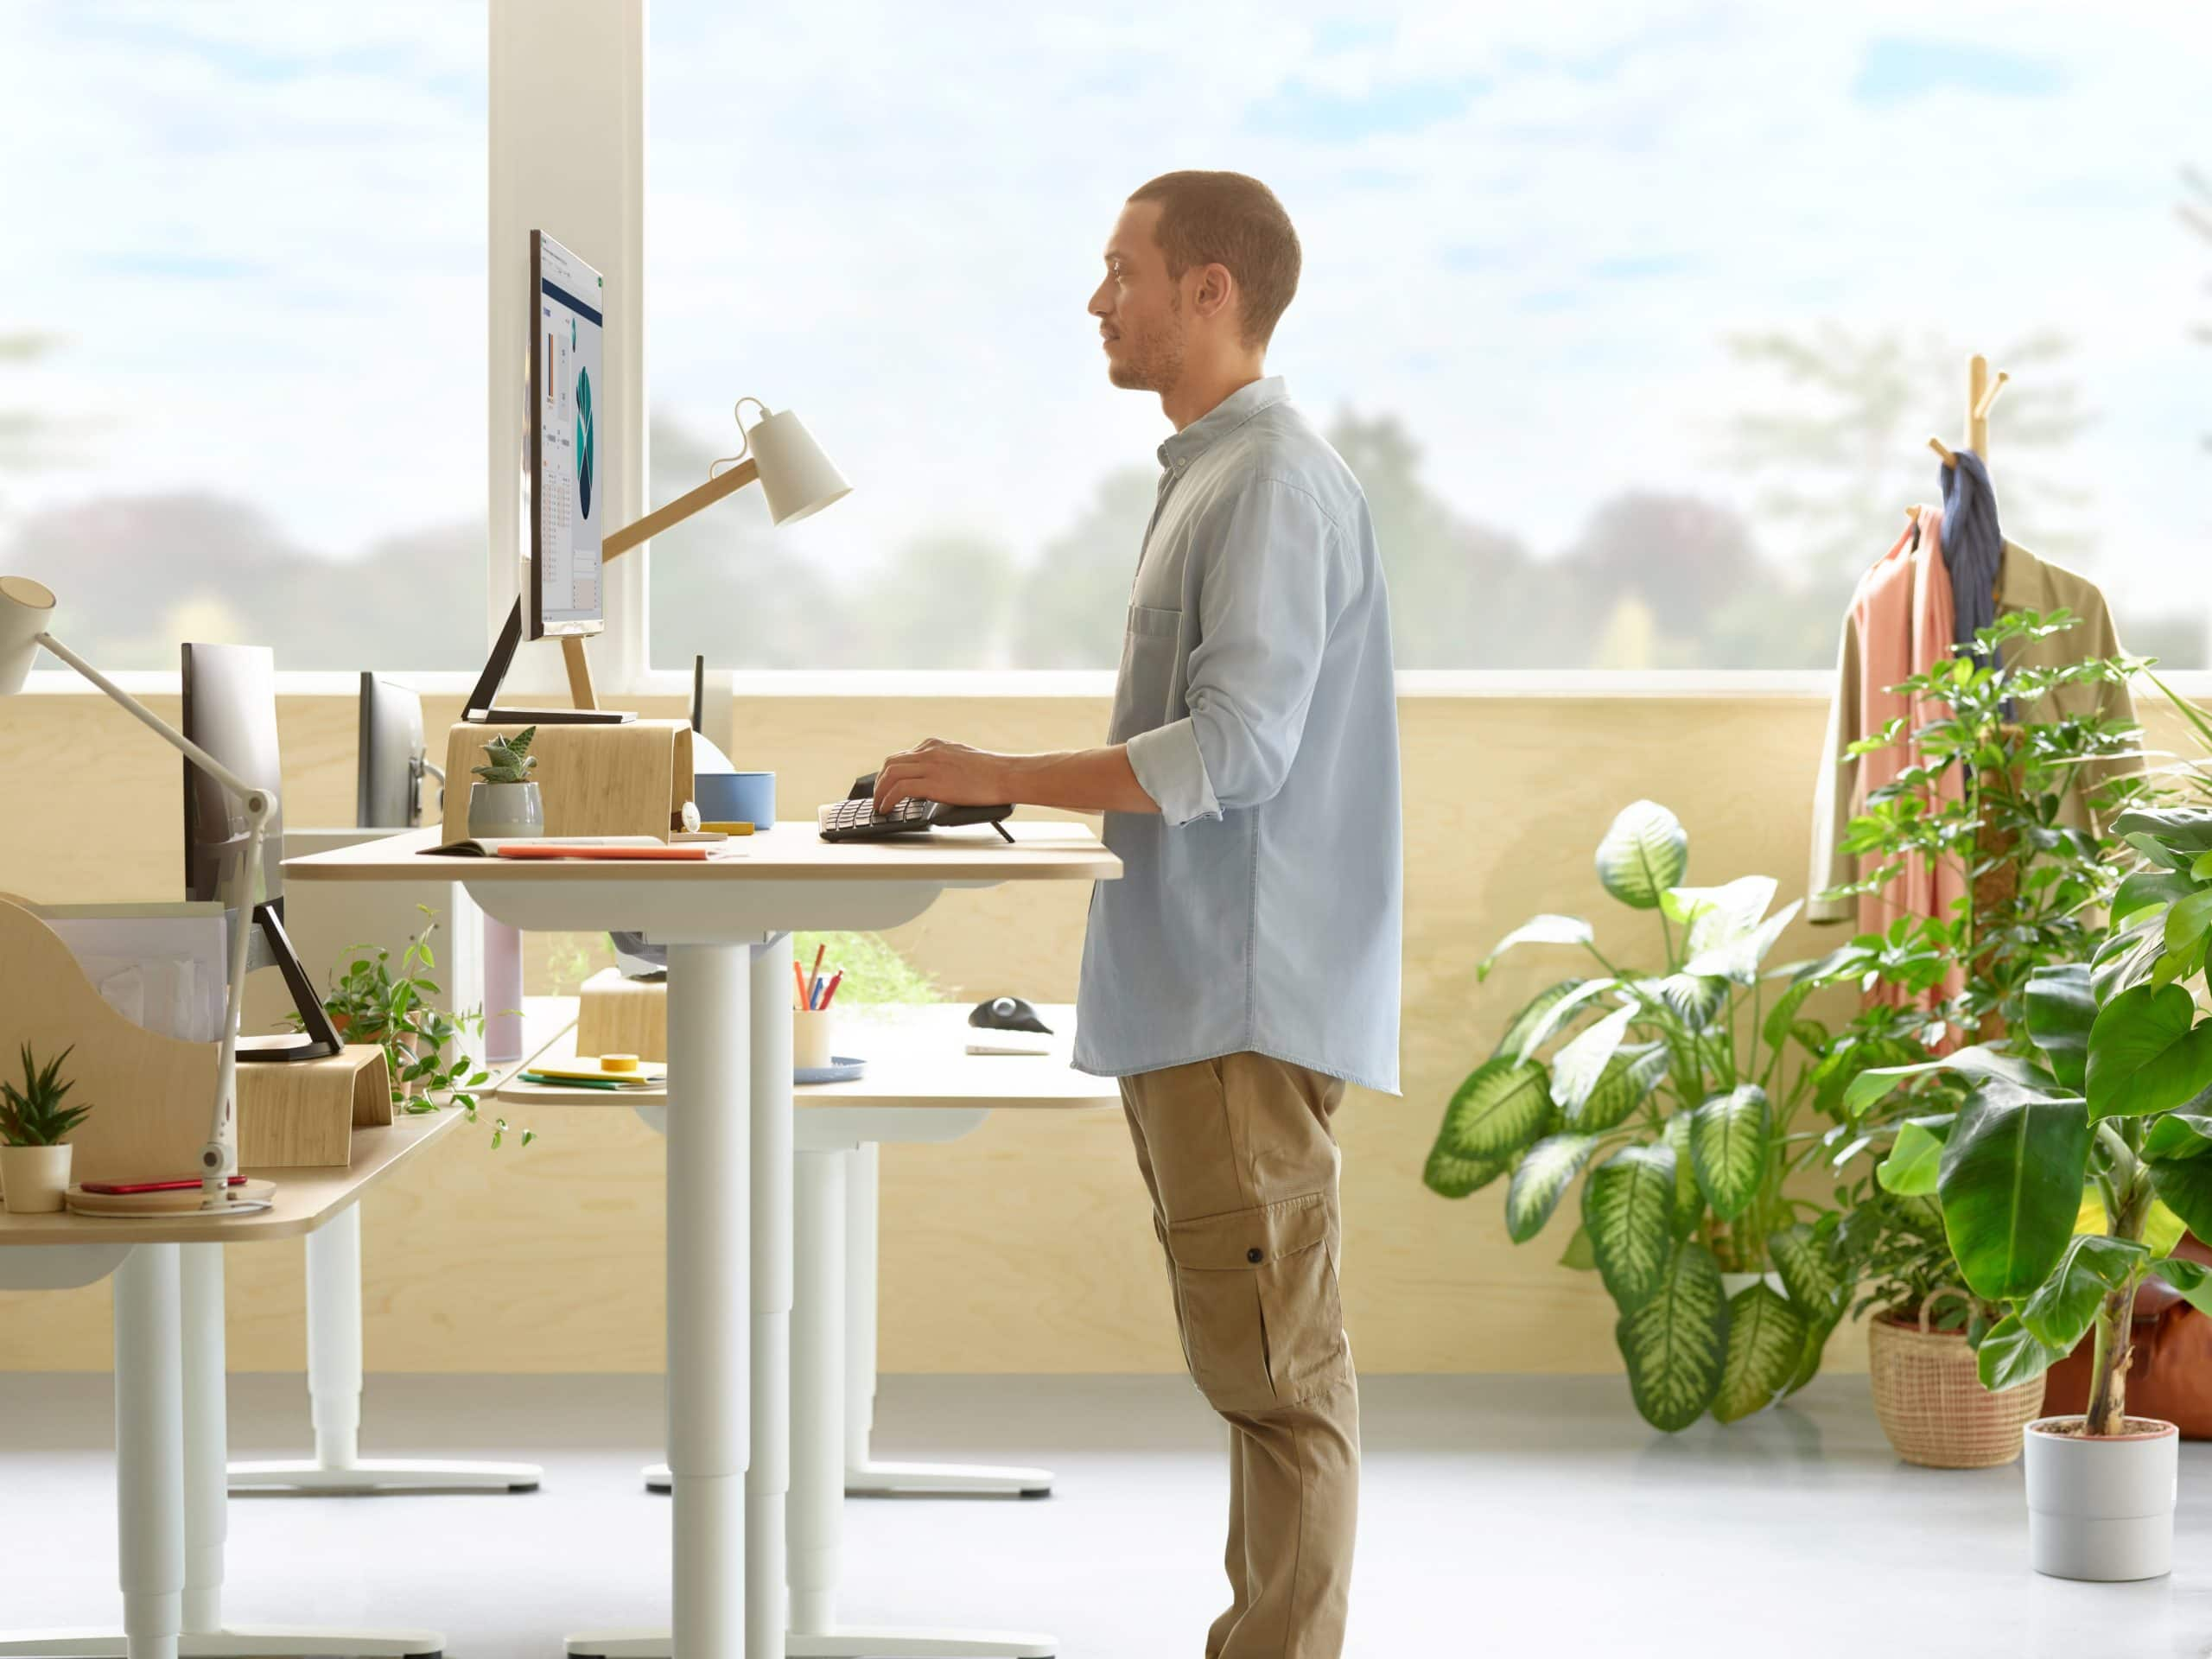 You can adjust the height of the front of the Logitech Ergo K860 keyboard to optimize your wrist position at a standing desk.